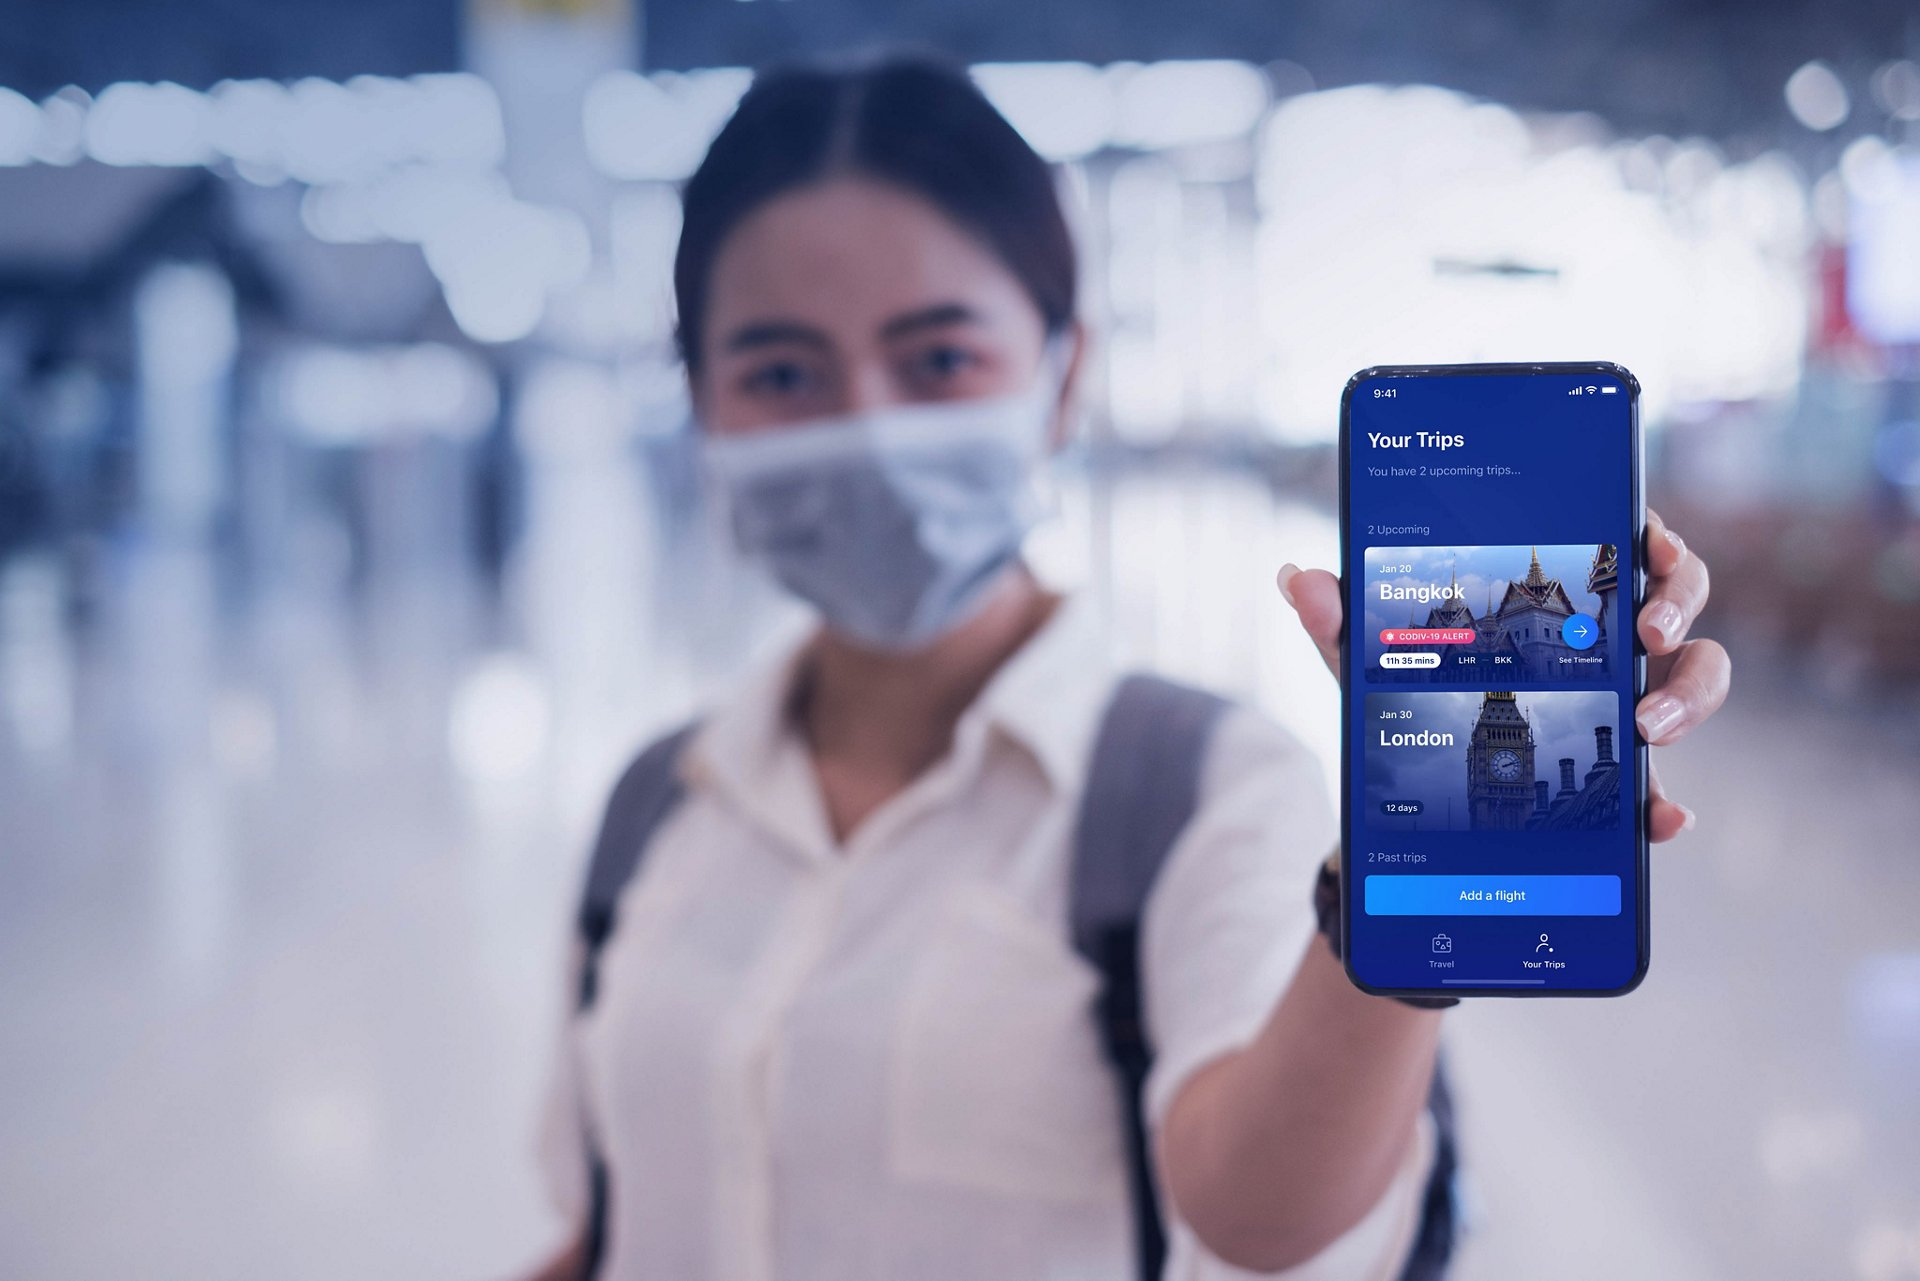 Airbus developed the Tripset application as its contribution to rebuilding clarity and trust for air travel during the COVID-19 pandemic